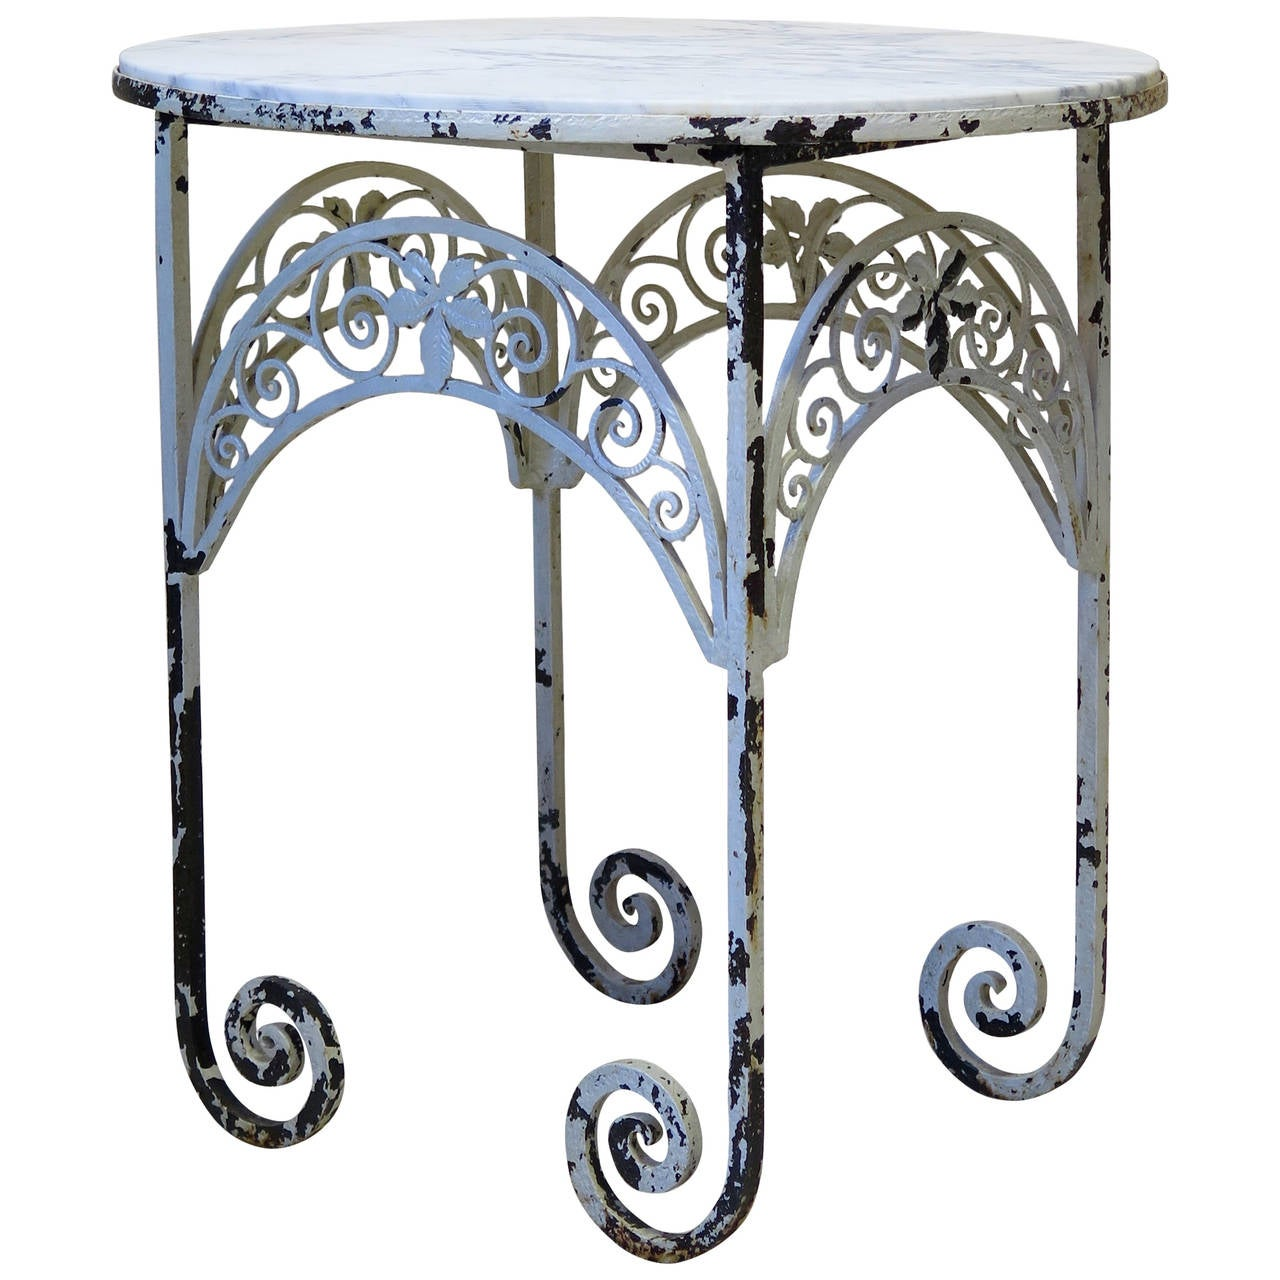 Oval Art Deco Wrought Iron And Marble Side Table, France, Circa 1920s 1